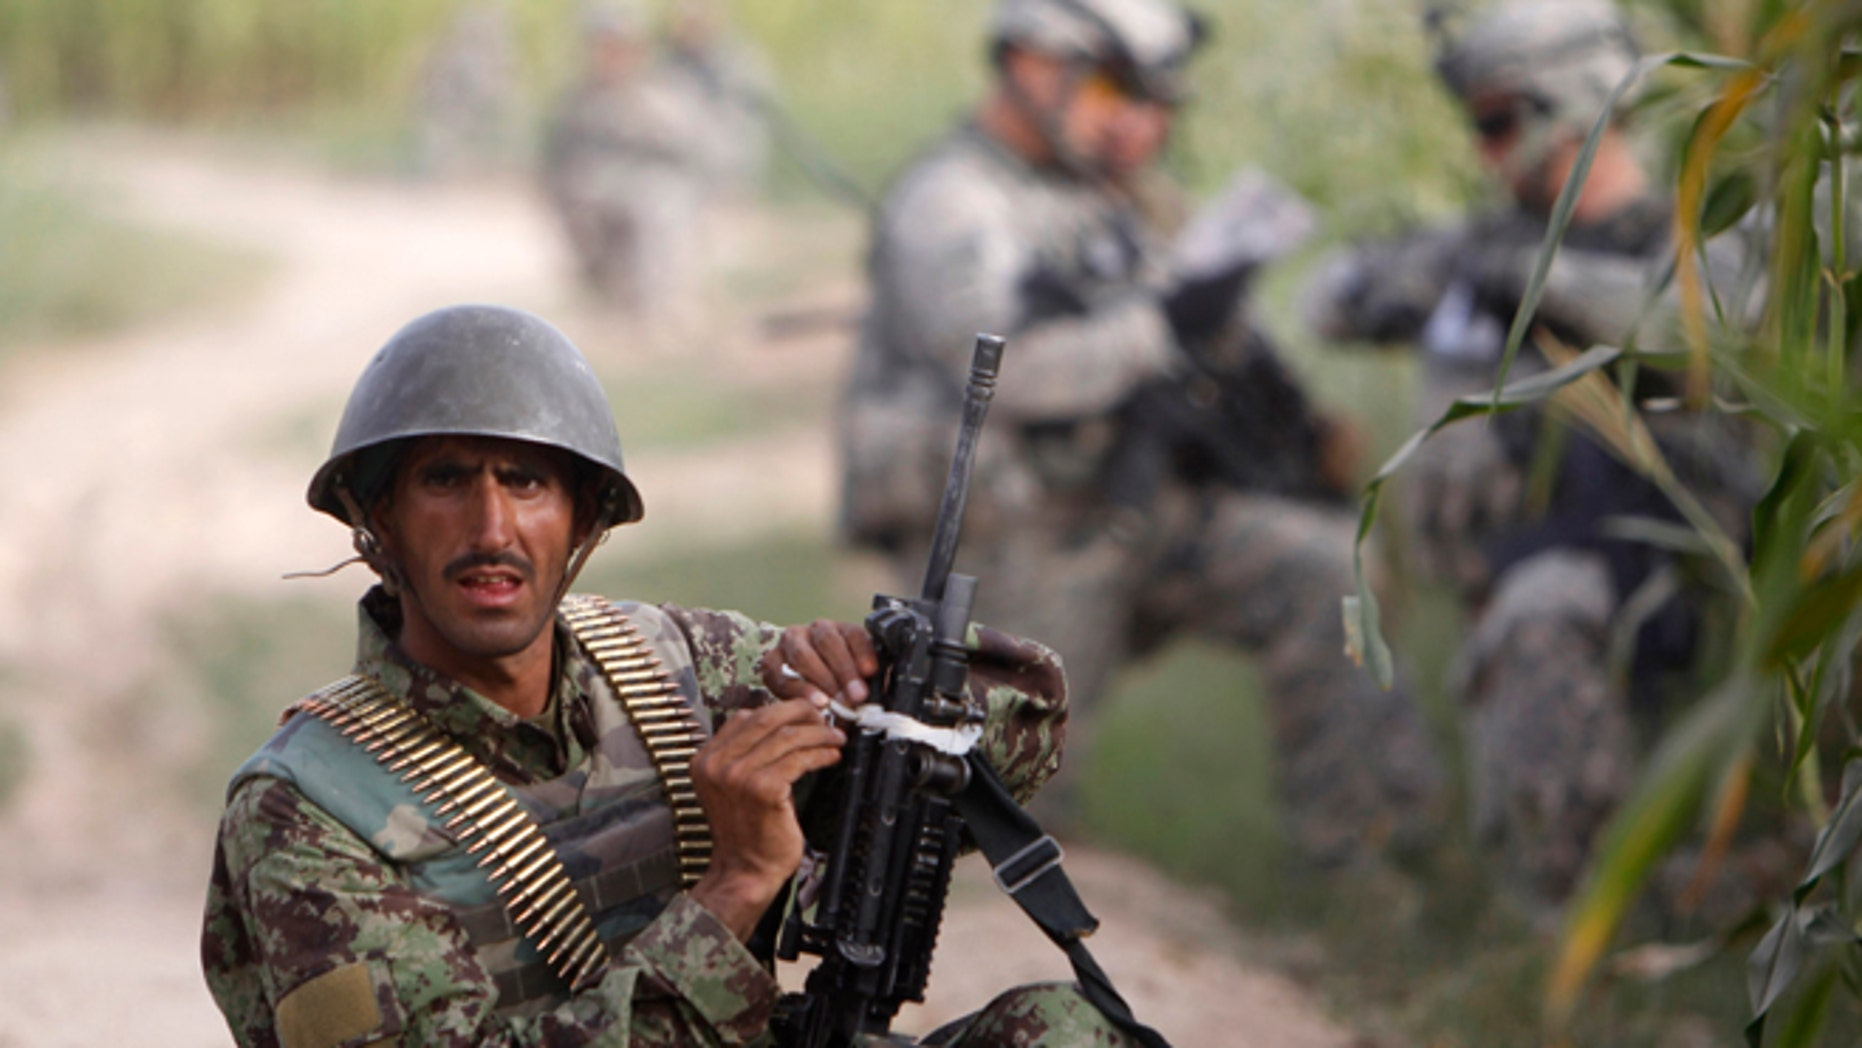 Sept. 13, 2010: An Afghan army soldier takes up position during a joint patrol with U.S. army soldiers.